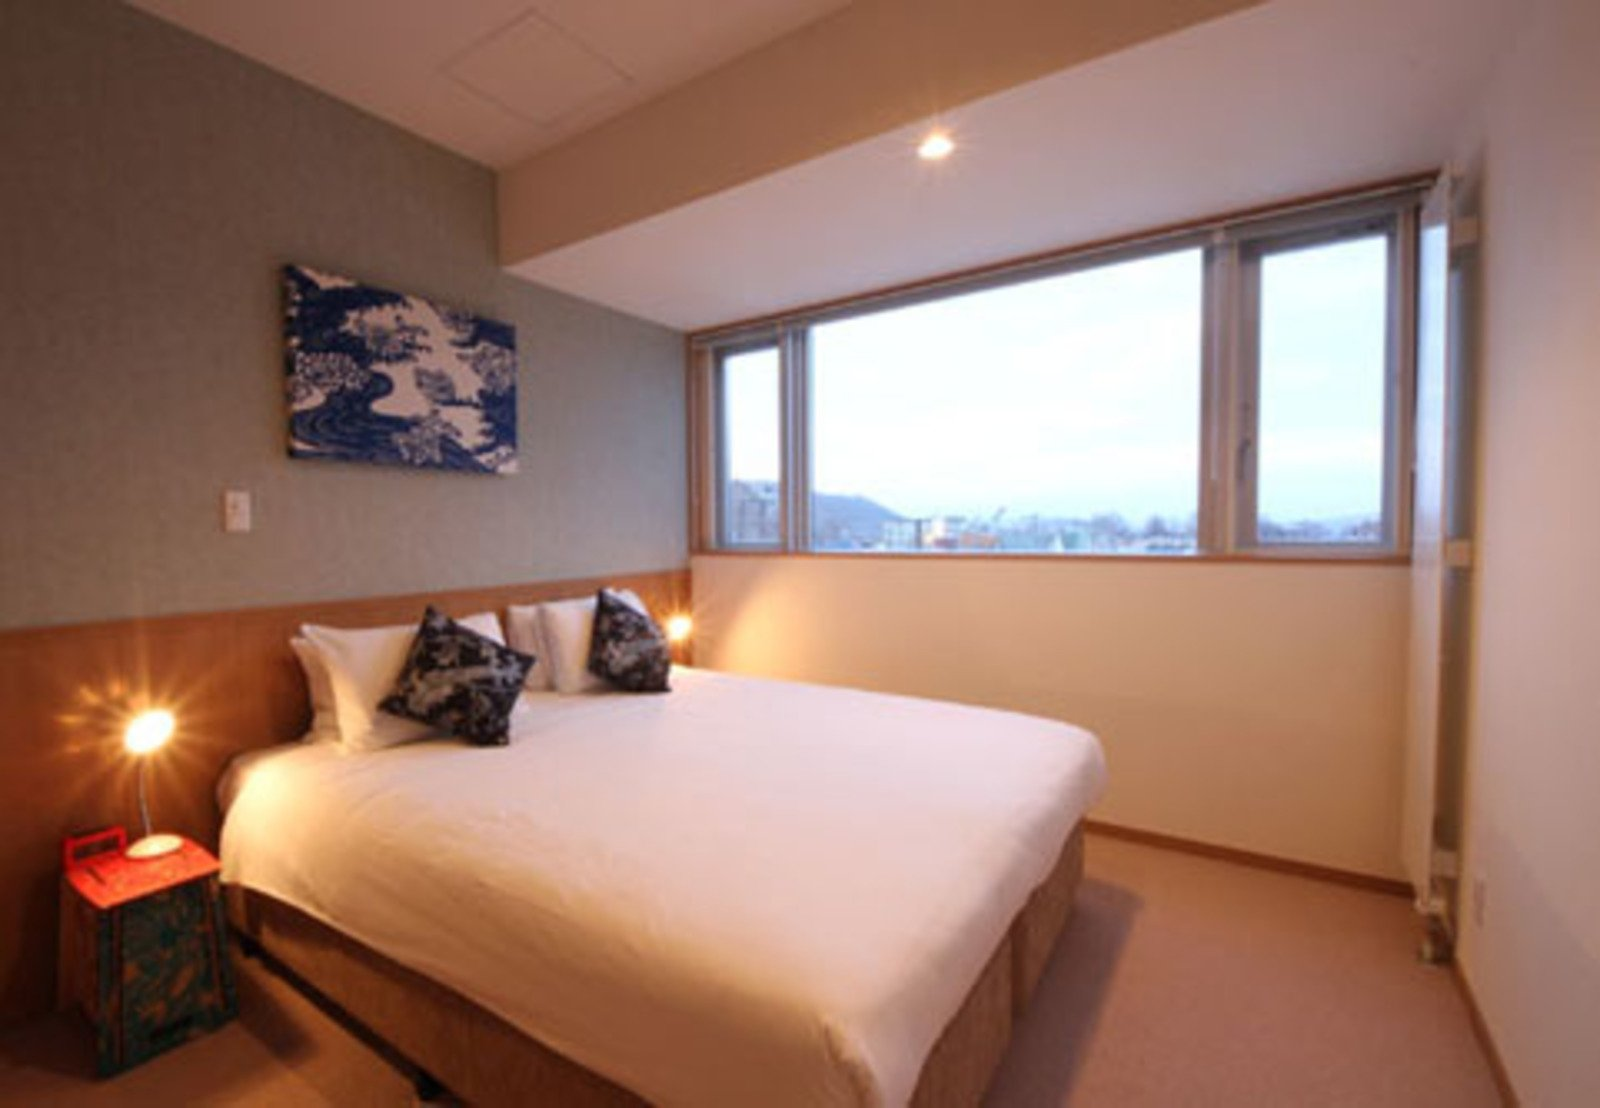 The master bedroom in a 3 bedroom apartment with Yotei view at Snow Crystal apartments in Niseko, Japan.